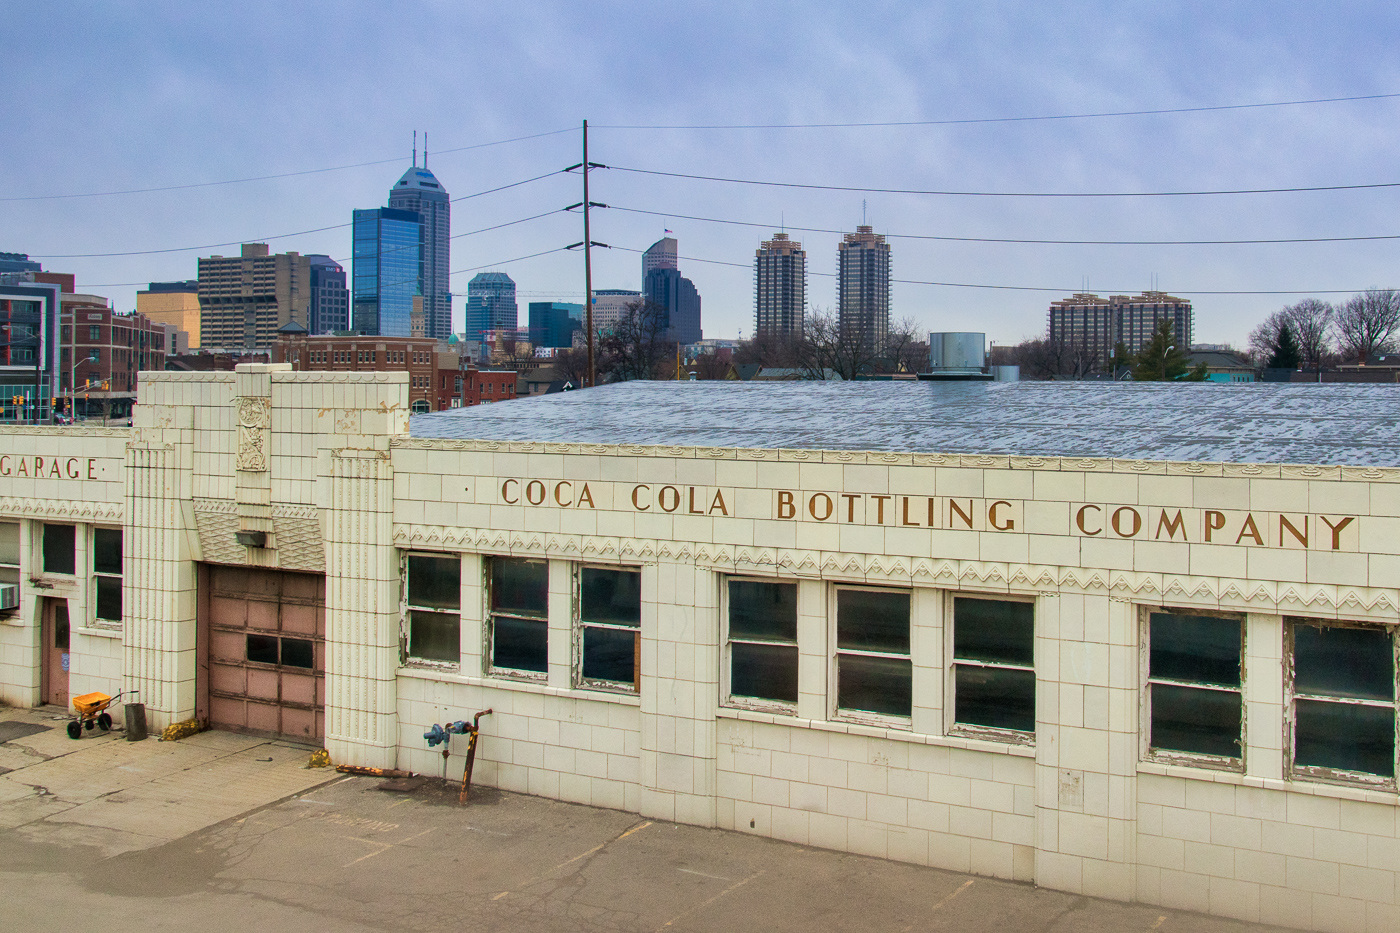 Cola Cola Bottling Co. and Indy Skyline